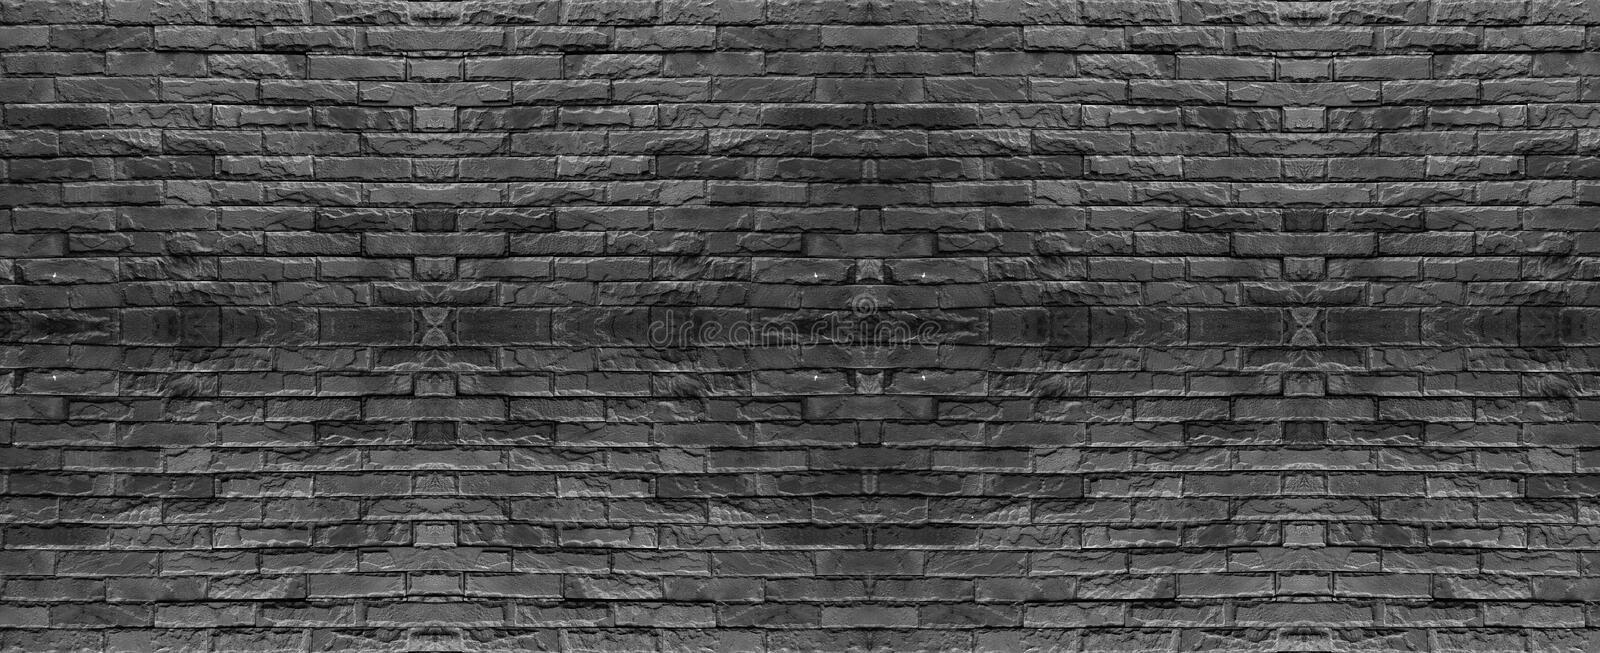 Dark Gray Brick Wall Texture Modern Style Background Industrial Architecture Details.  royalty free stock photo